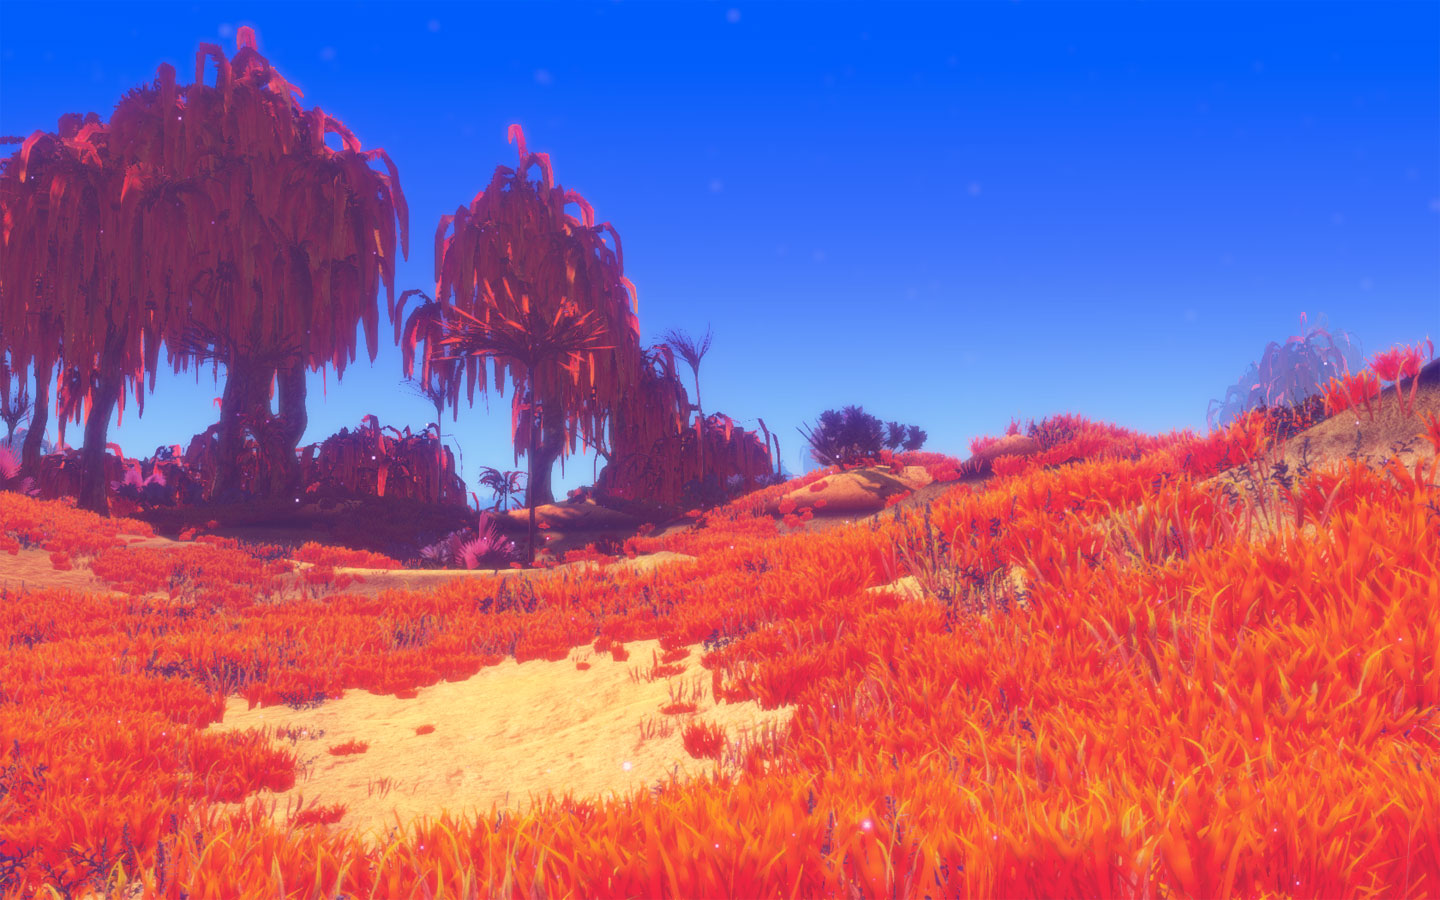 Sandy Voxel Terrain Engine - When Vision Meets Execution | Planet Nomads